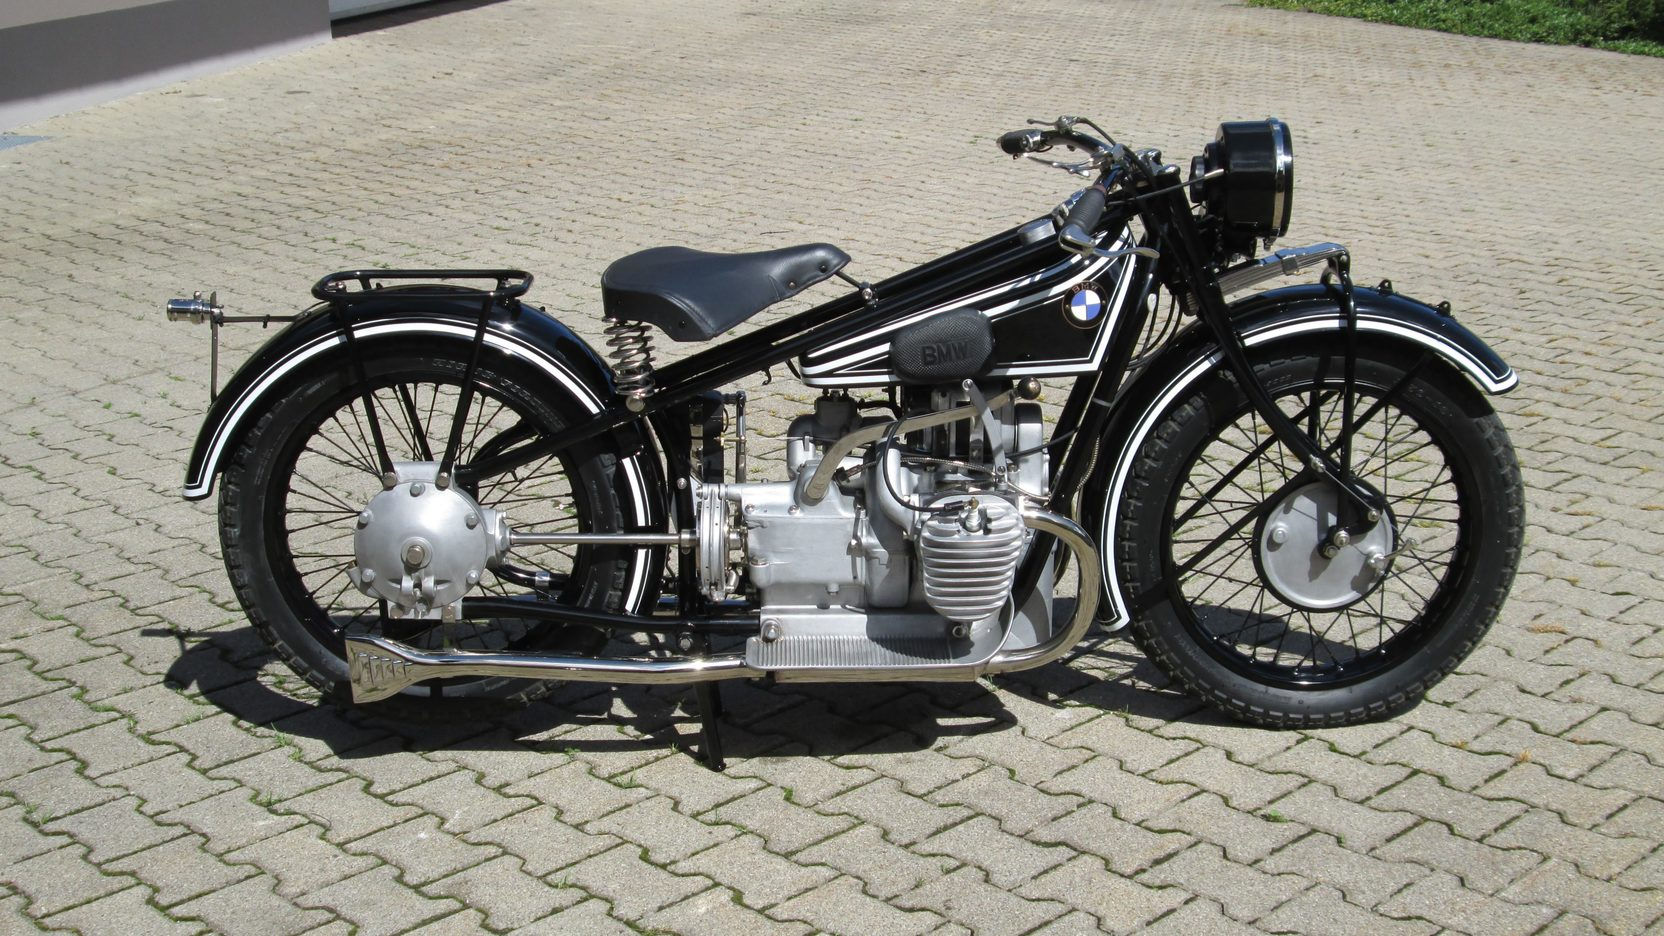 The BMW R52 was the final development of the original R32 and came after the R42, each being an improved design over the other.